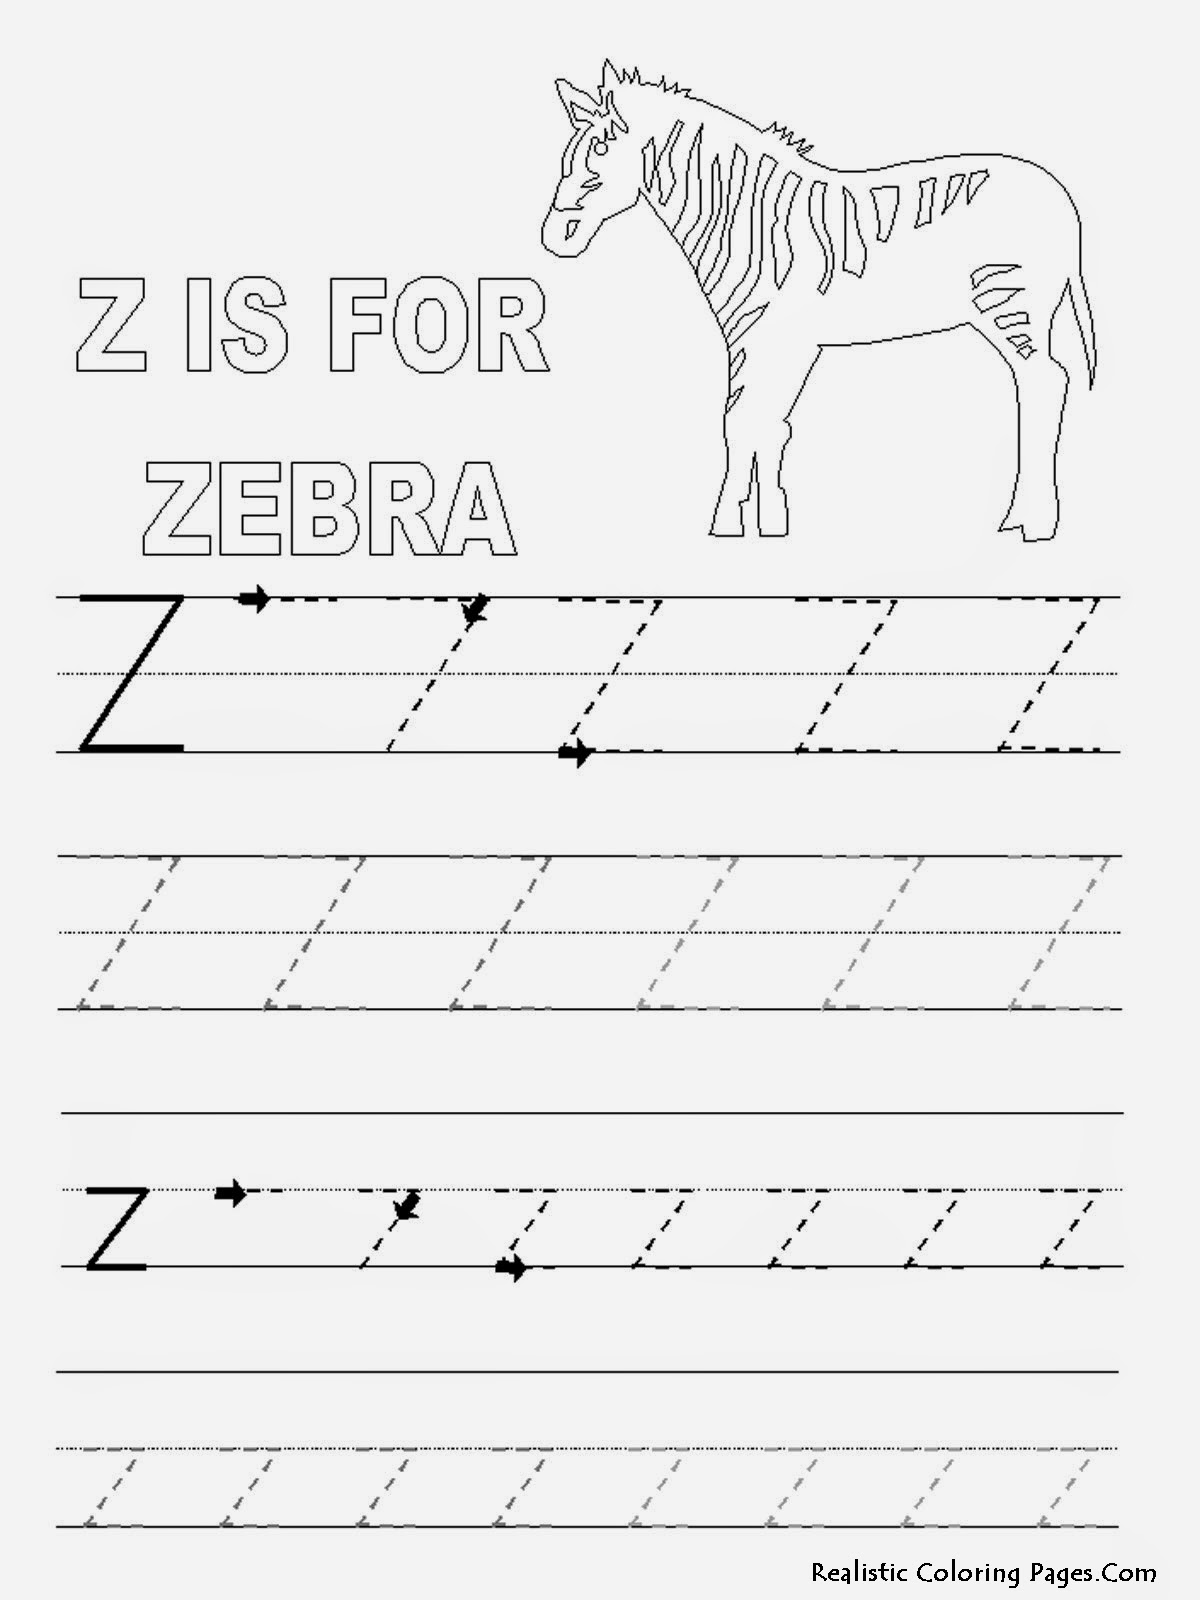 letter tracing pages free coloring pages of zebra letter d 23280 | Alphabet Tracer Pages Z Zebra